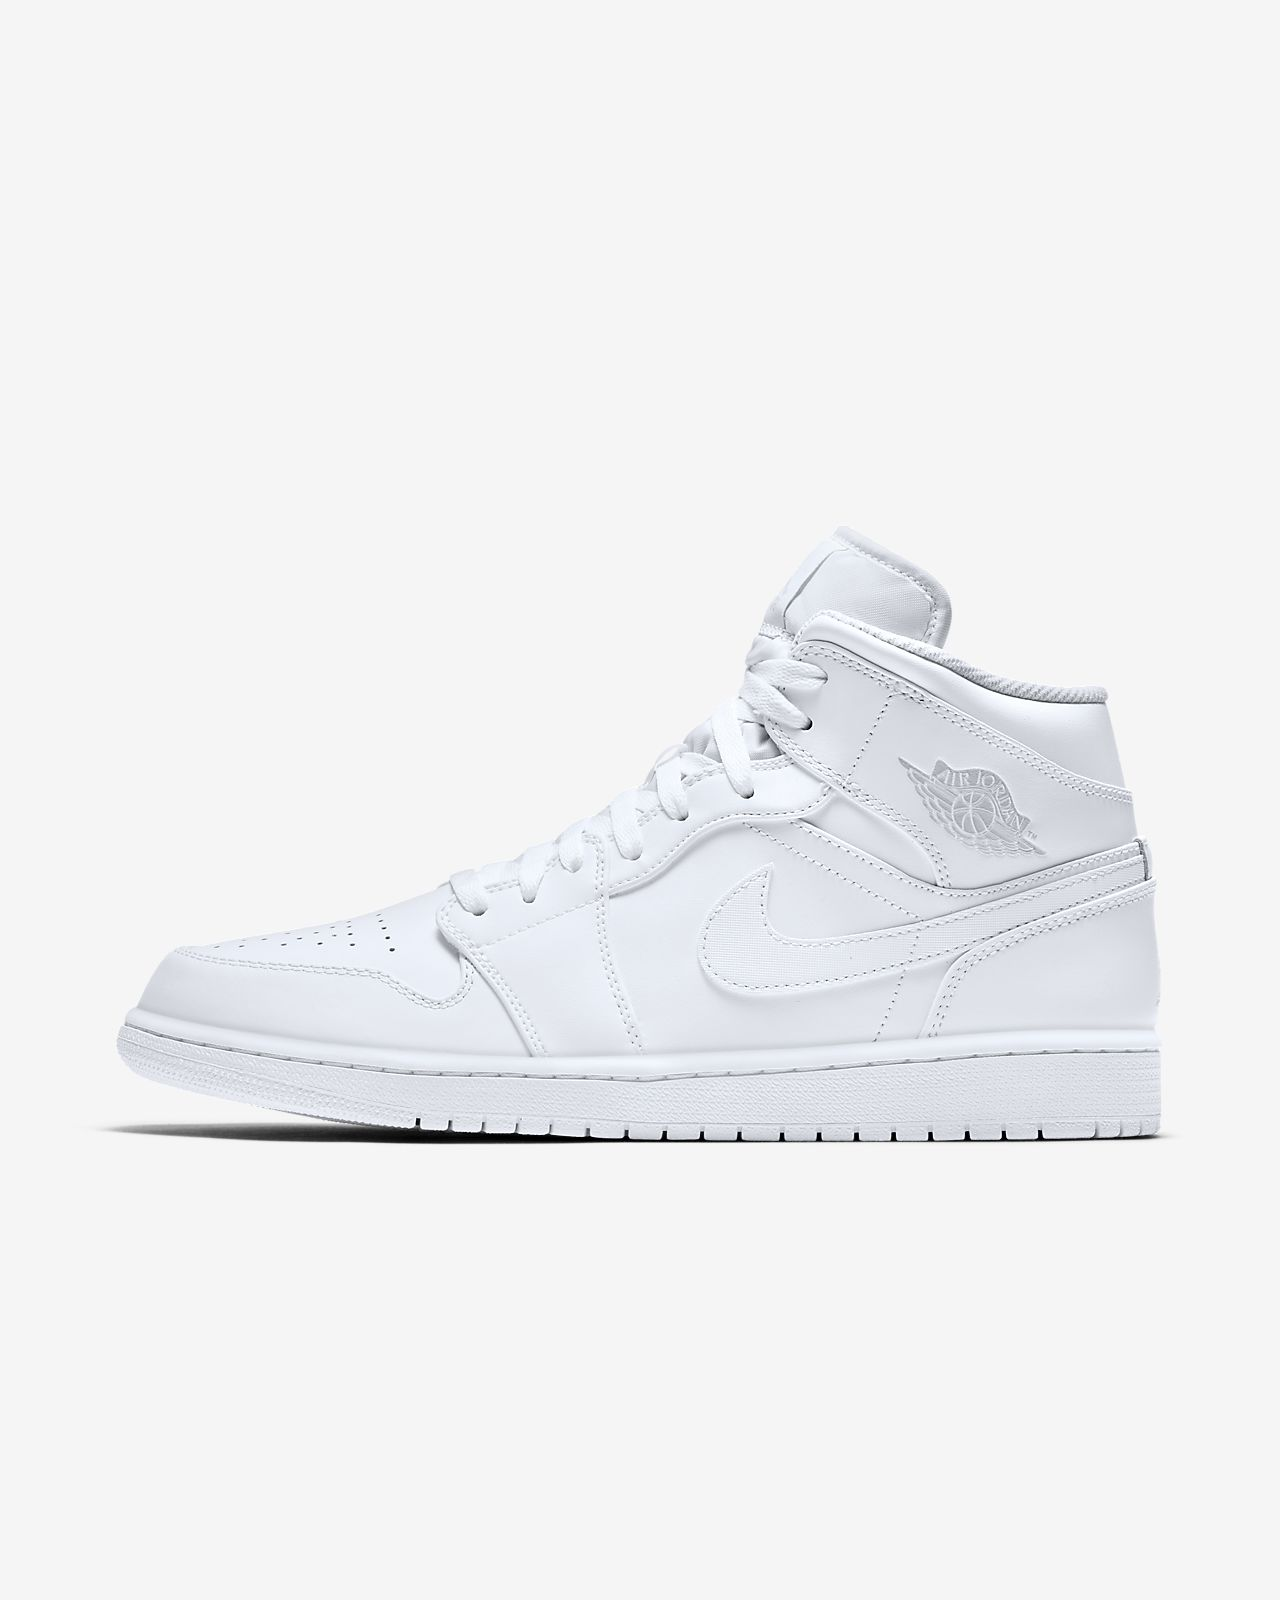 nike mens air jordan 1 mid basketball shoes nz